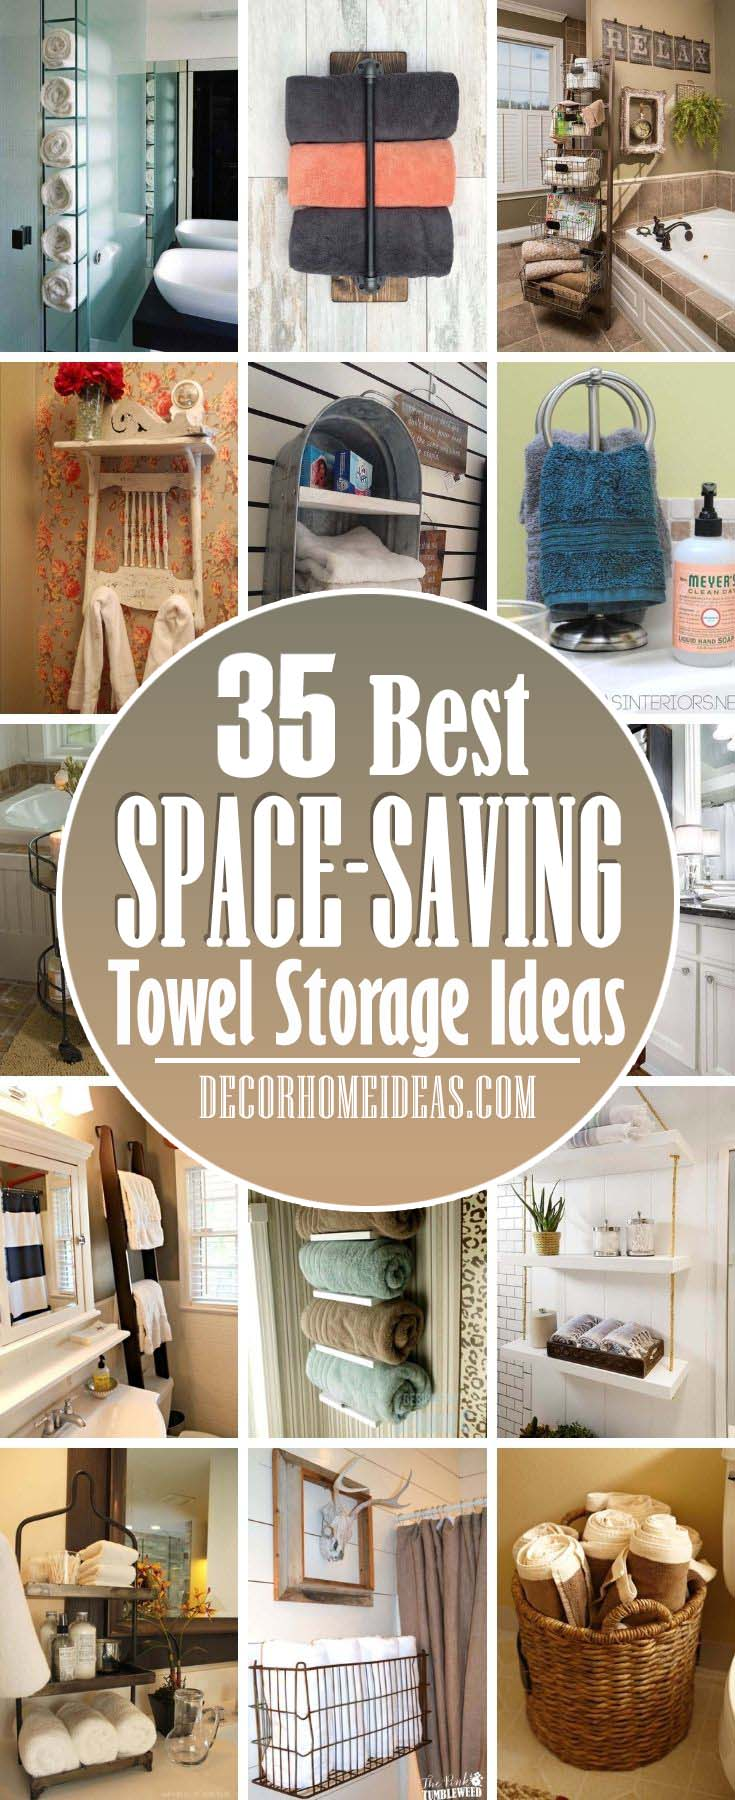 Best Space Saving Towel Storage Ideas Bathroom. Take a look at some smart towel storage ideas that will help you keep your bath towels fresh – and your bathroom tidy and organized. #decorhomeideas